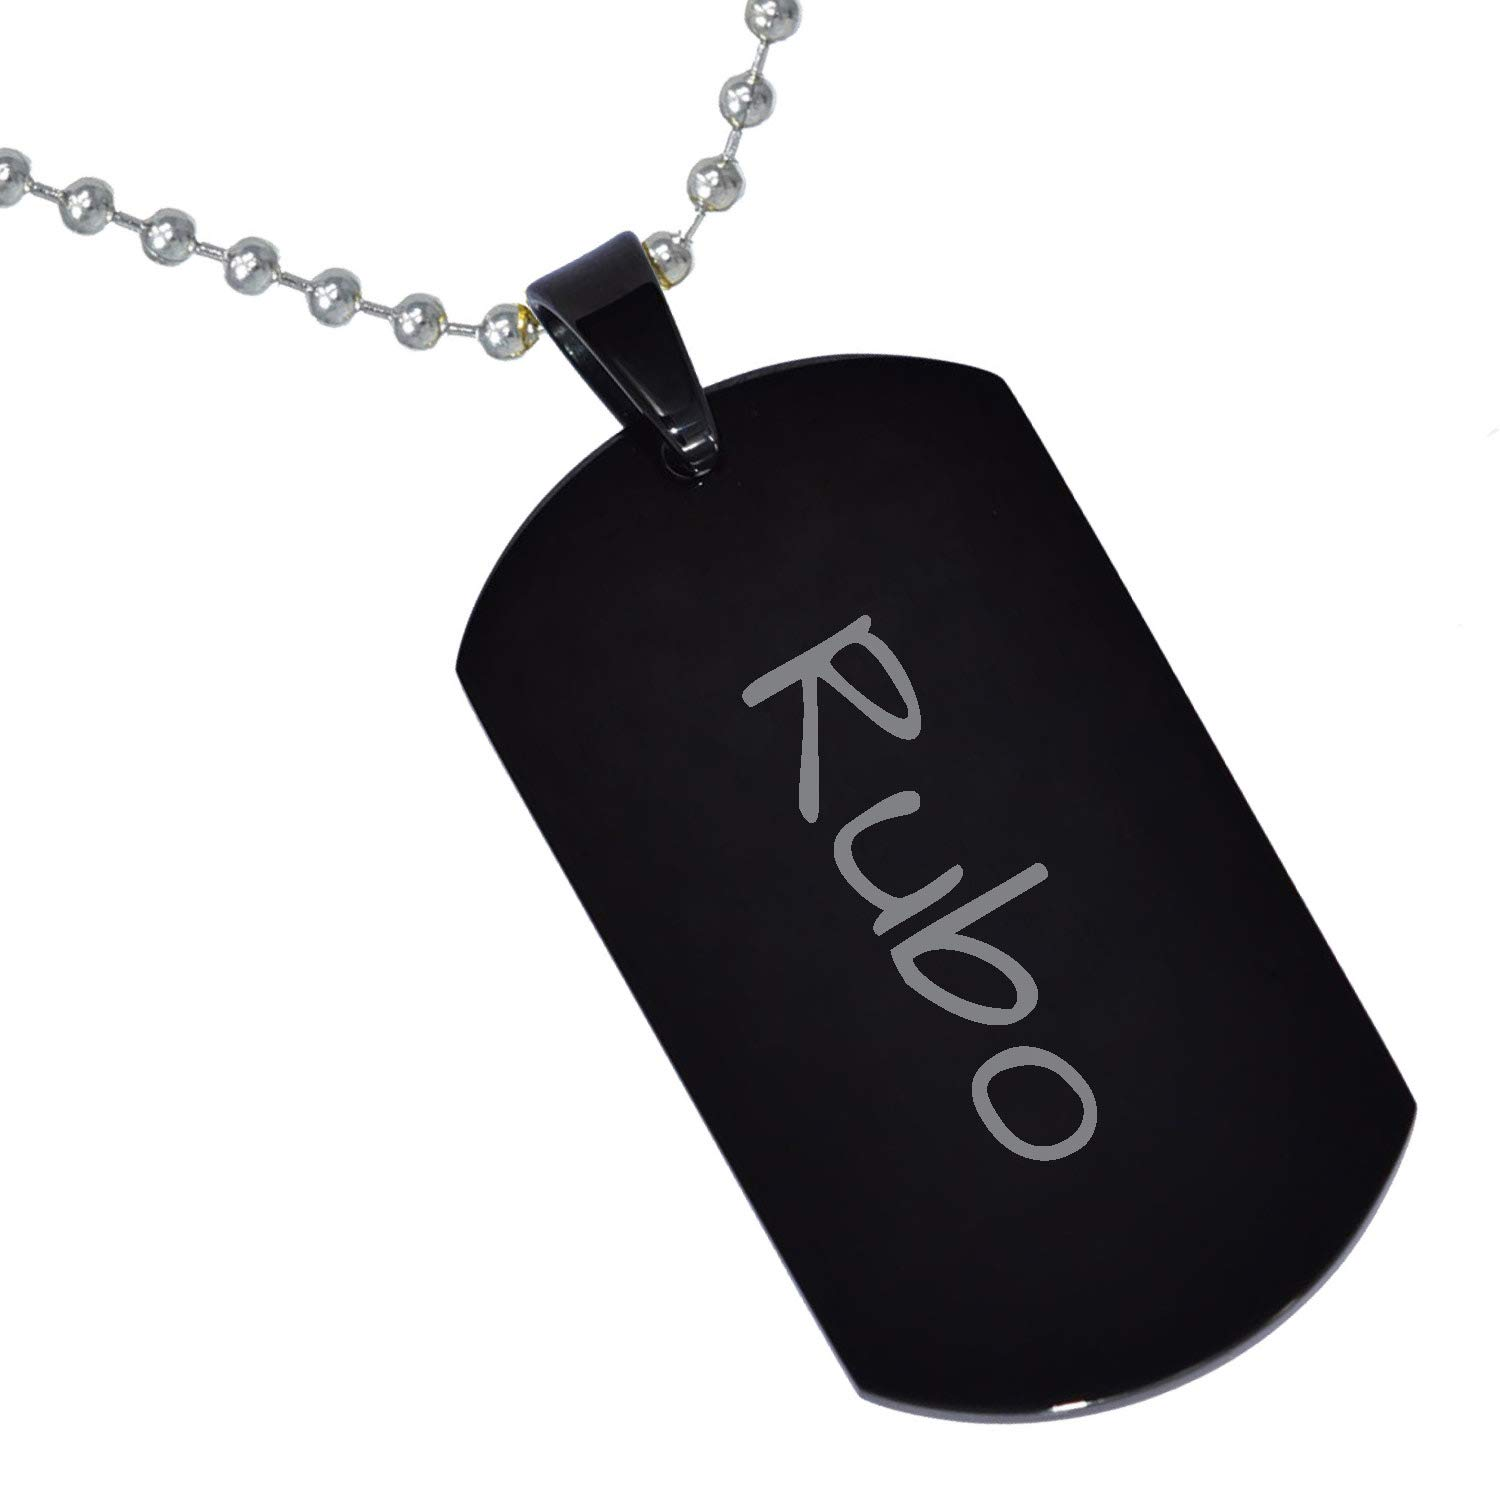 Stainless Steel Silver Gold Black Rose Gold Color Baby Name Rubo Engraved Personalized Gifts For Son Daughter Boyfriend Girlfriend Initial Customizable Pendant Necklace Dog Tags 24 Ball Chain